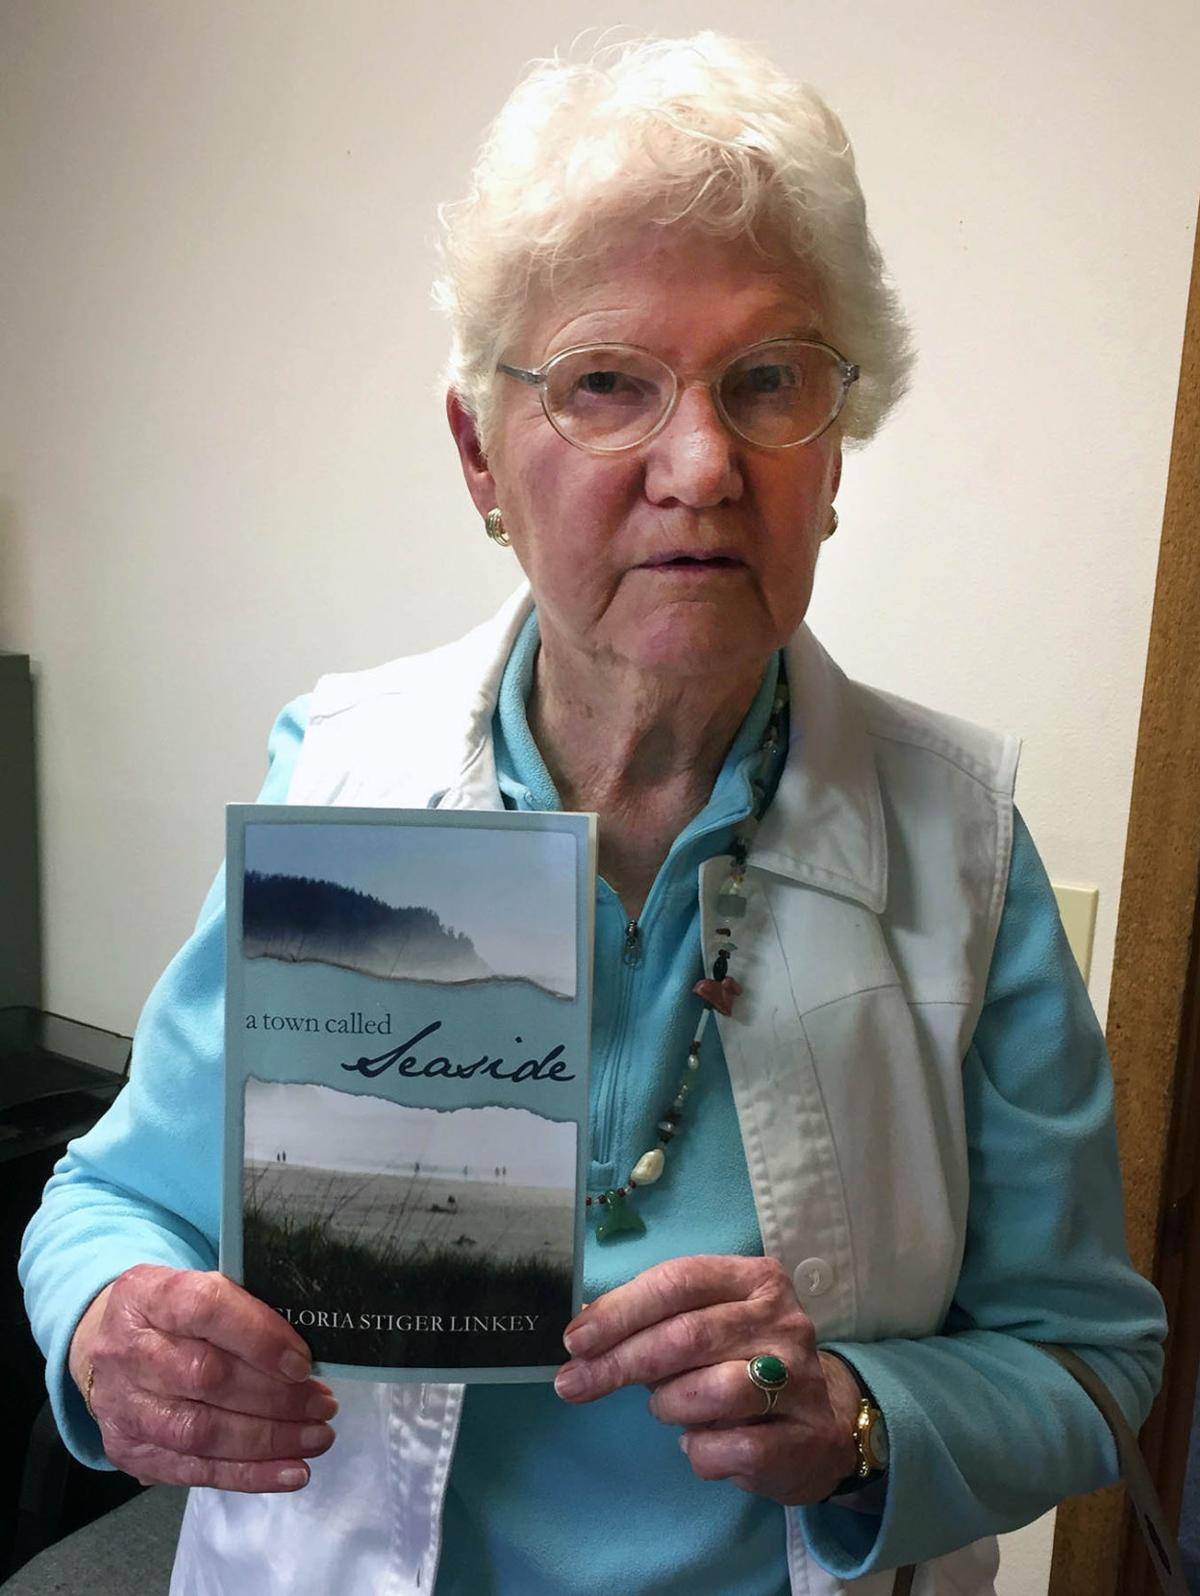 Author shares a love of Seaside's community